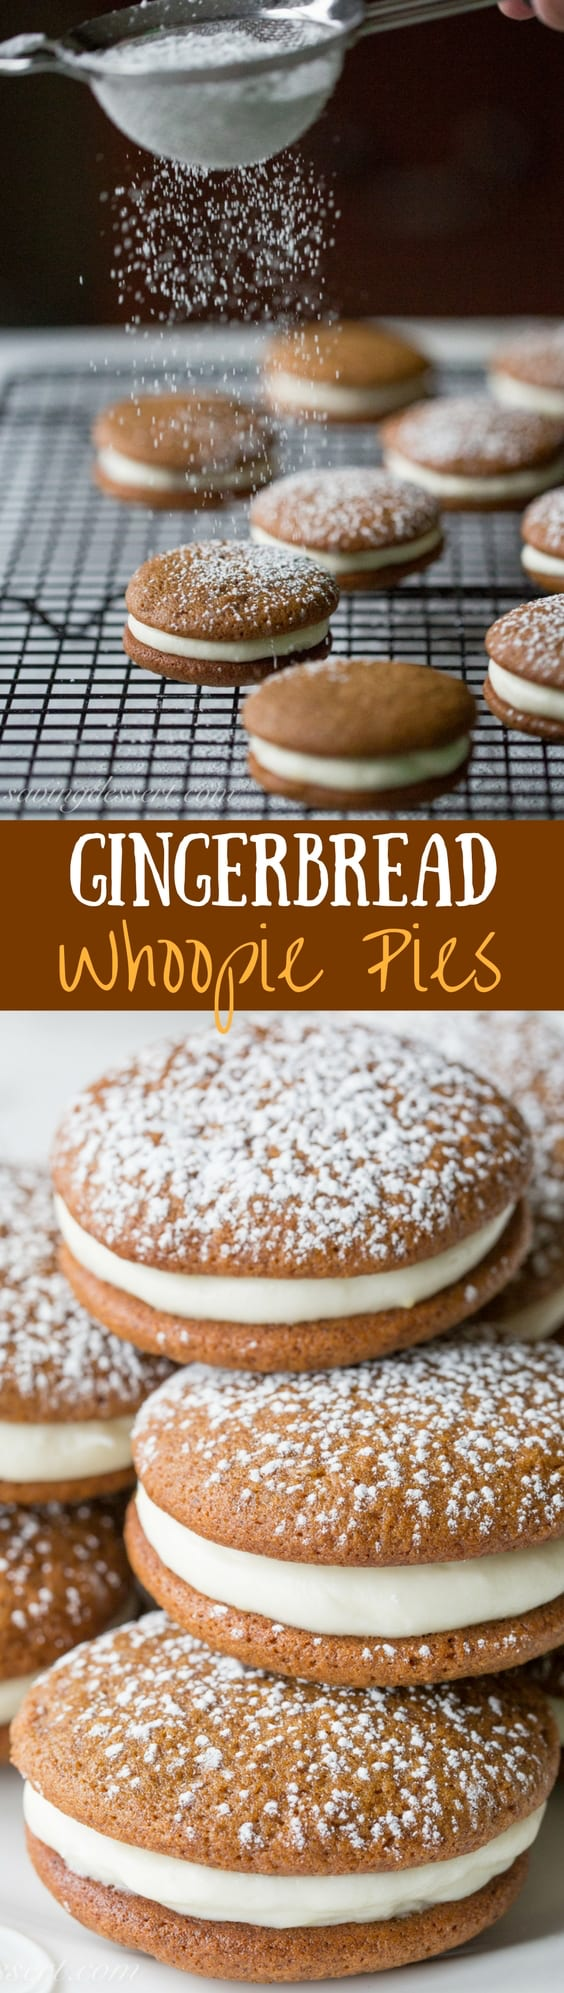 Gingerbread Whoopie Pies with Lemon Cream Cheese Filling - soft and sweet and loaded with gingerbread flavor with the perfect lemon filling! www.savingdessert.com